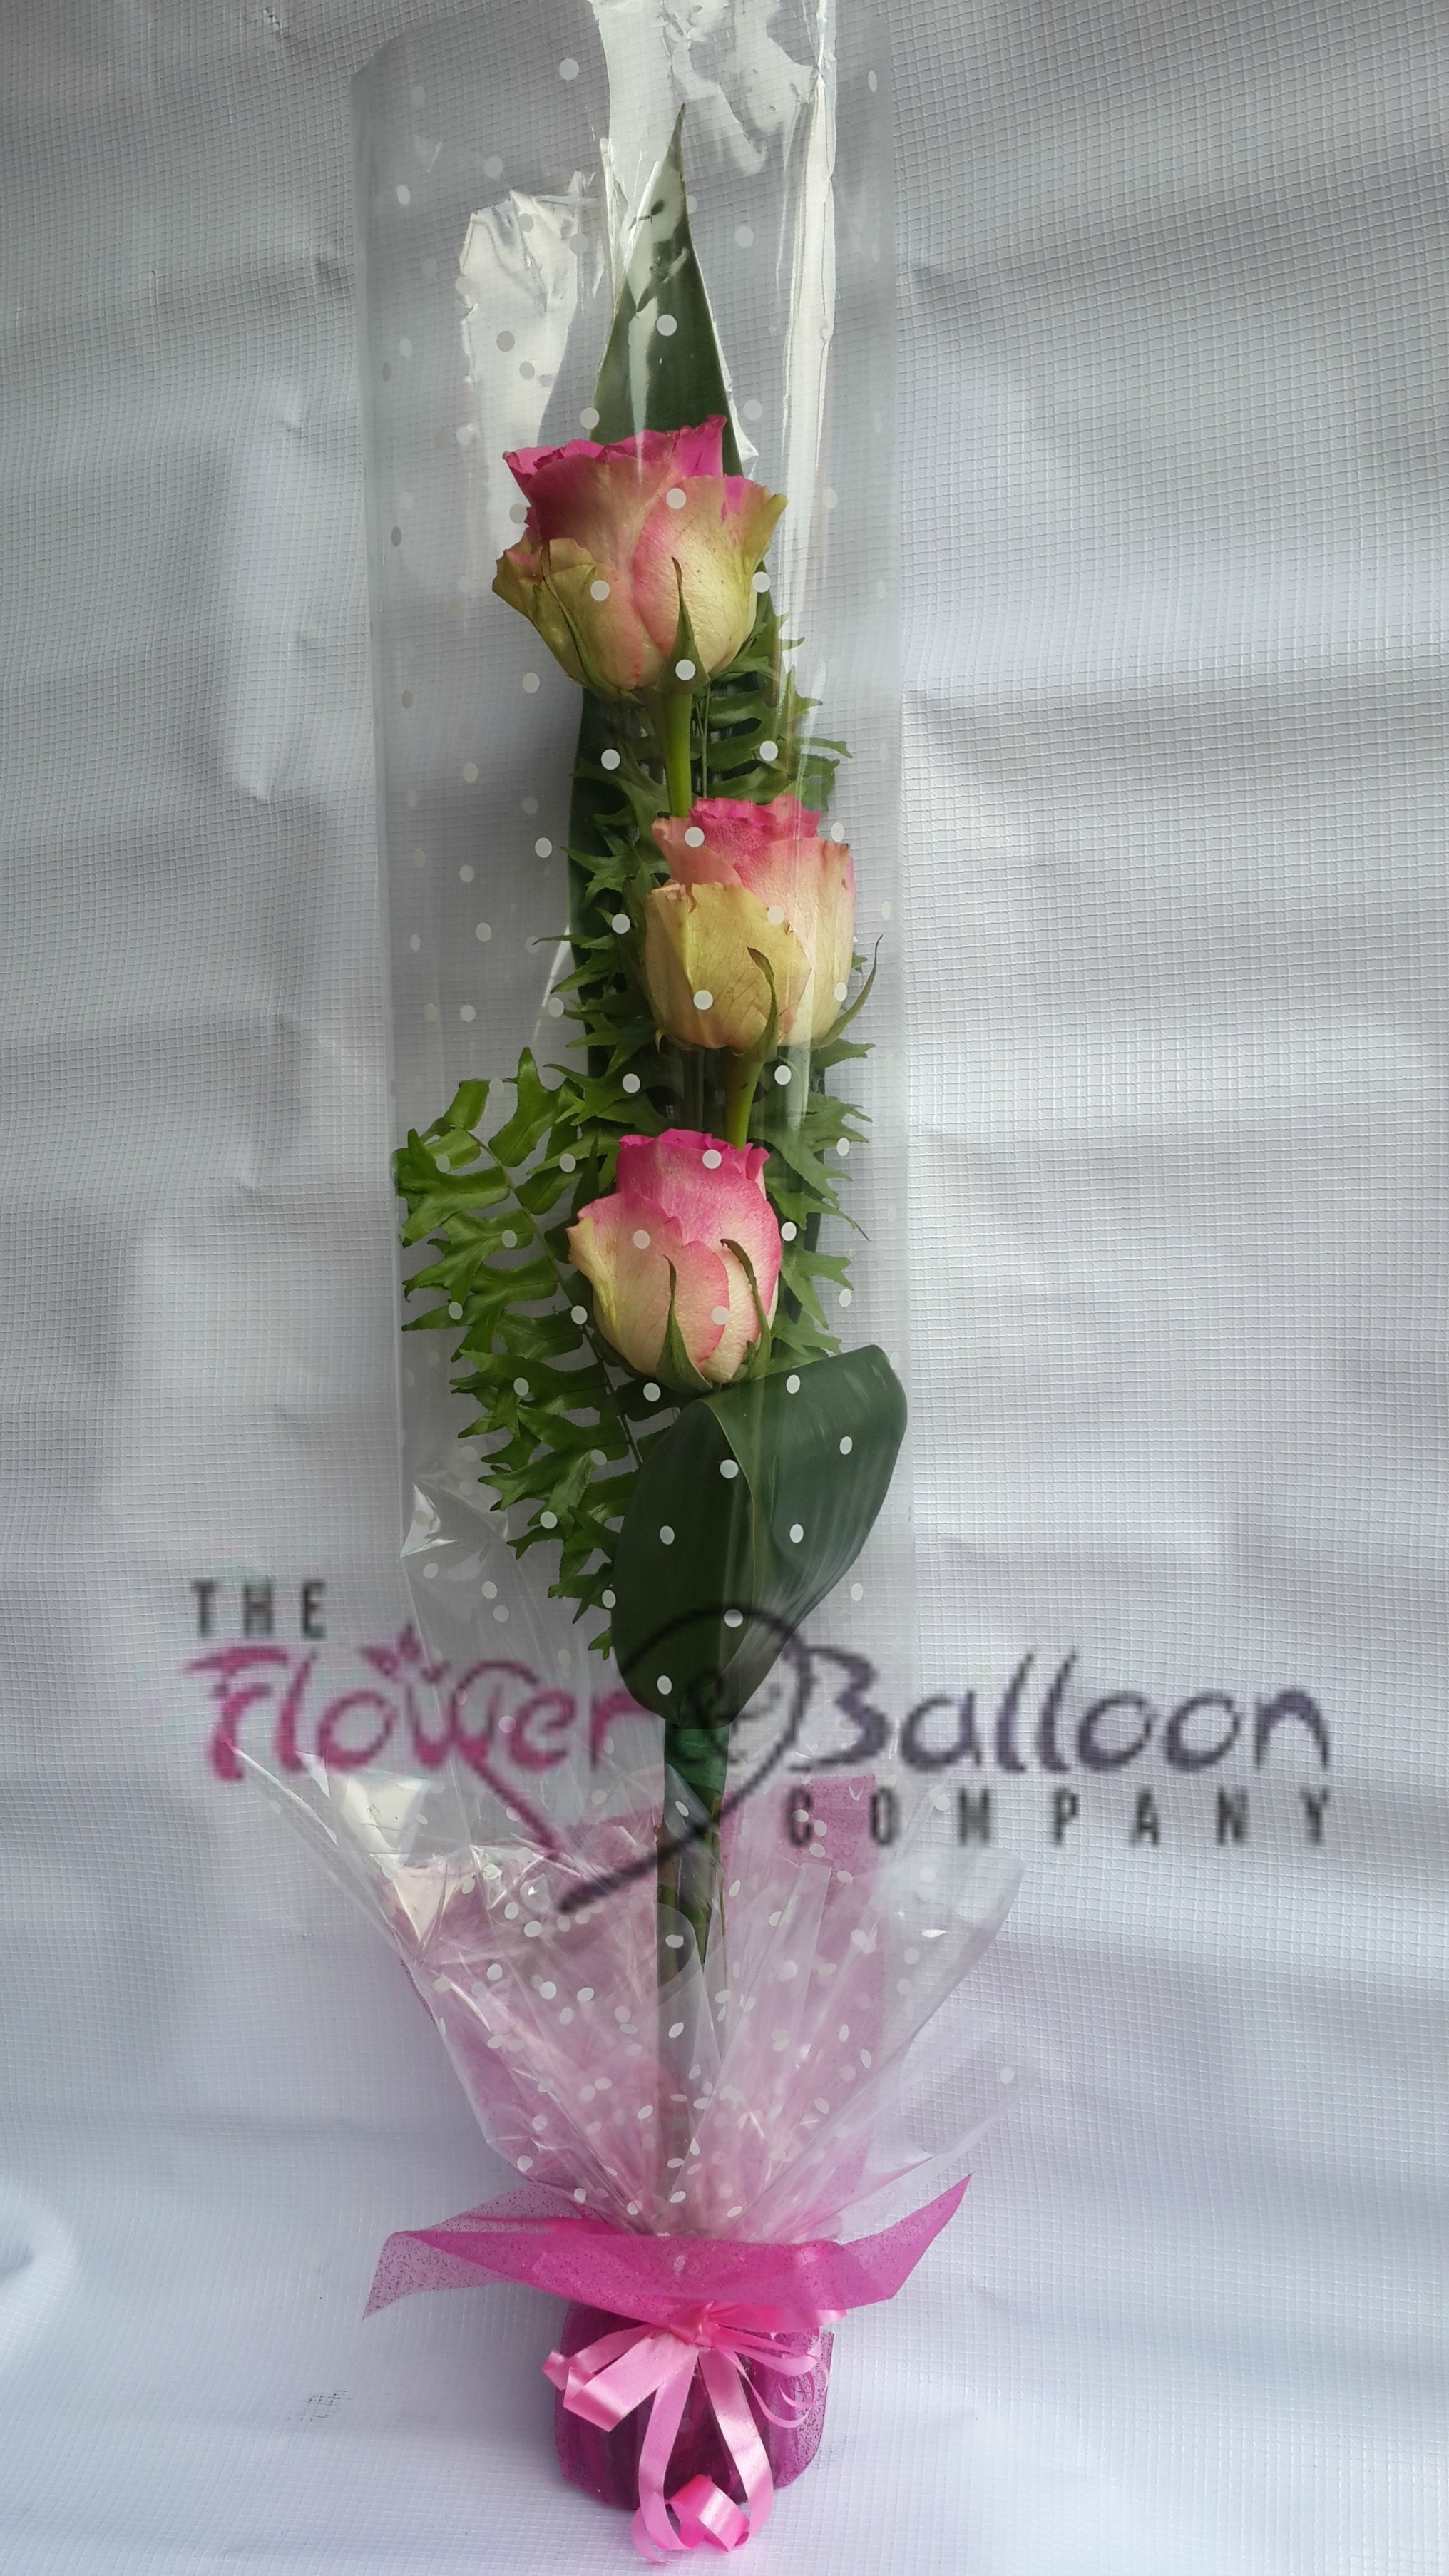 3 Stems Roses Wrapped In Cello Flowerandballooncompany Com